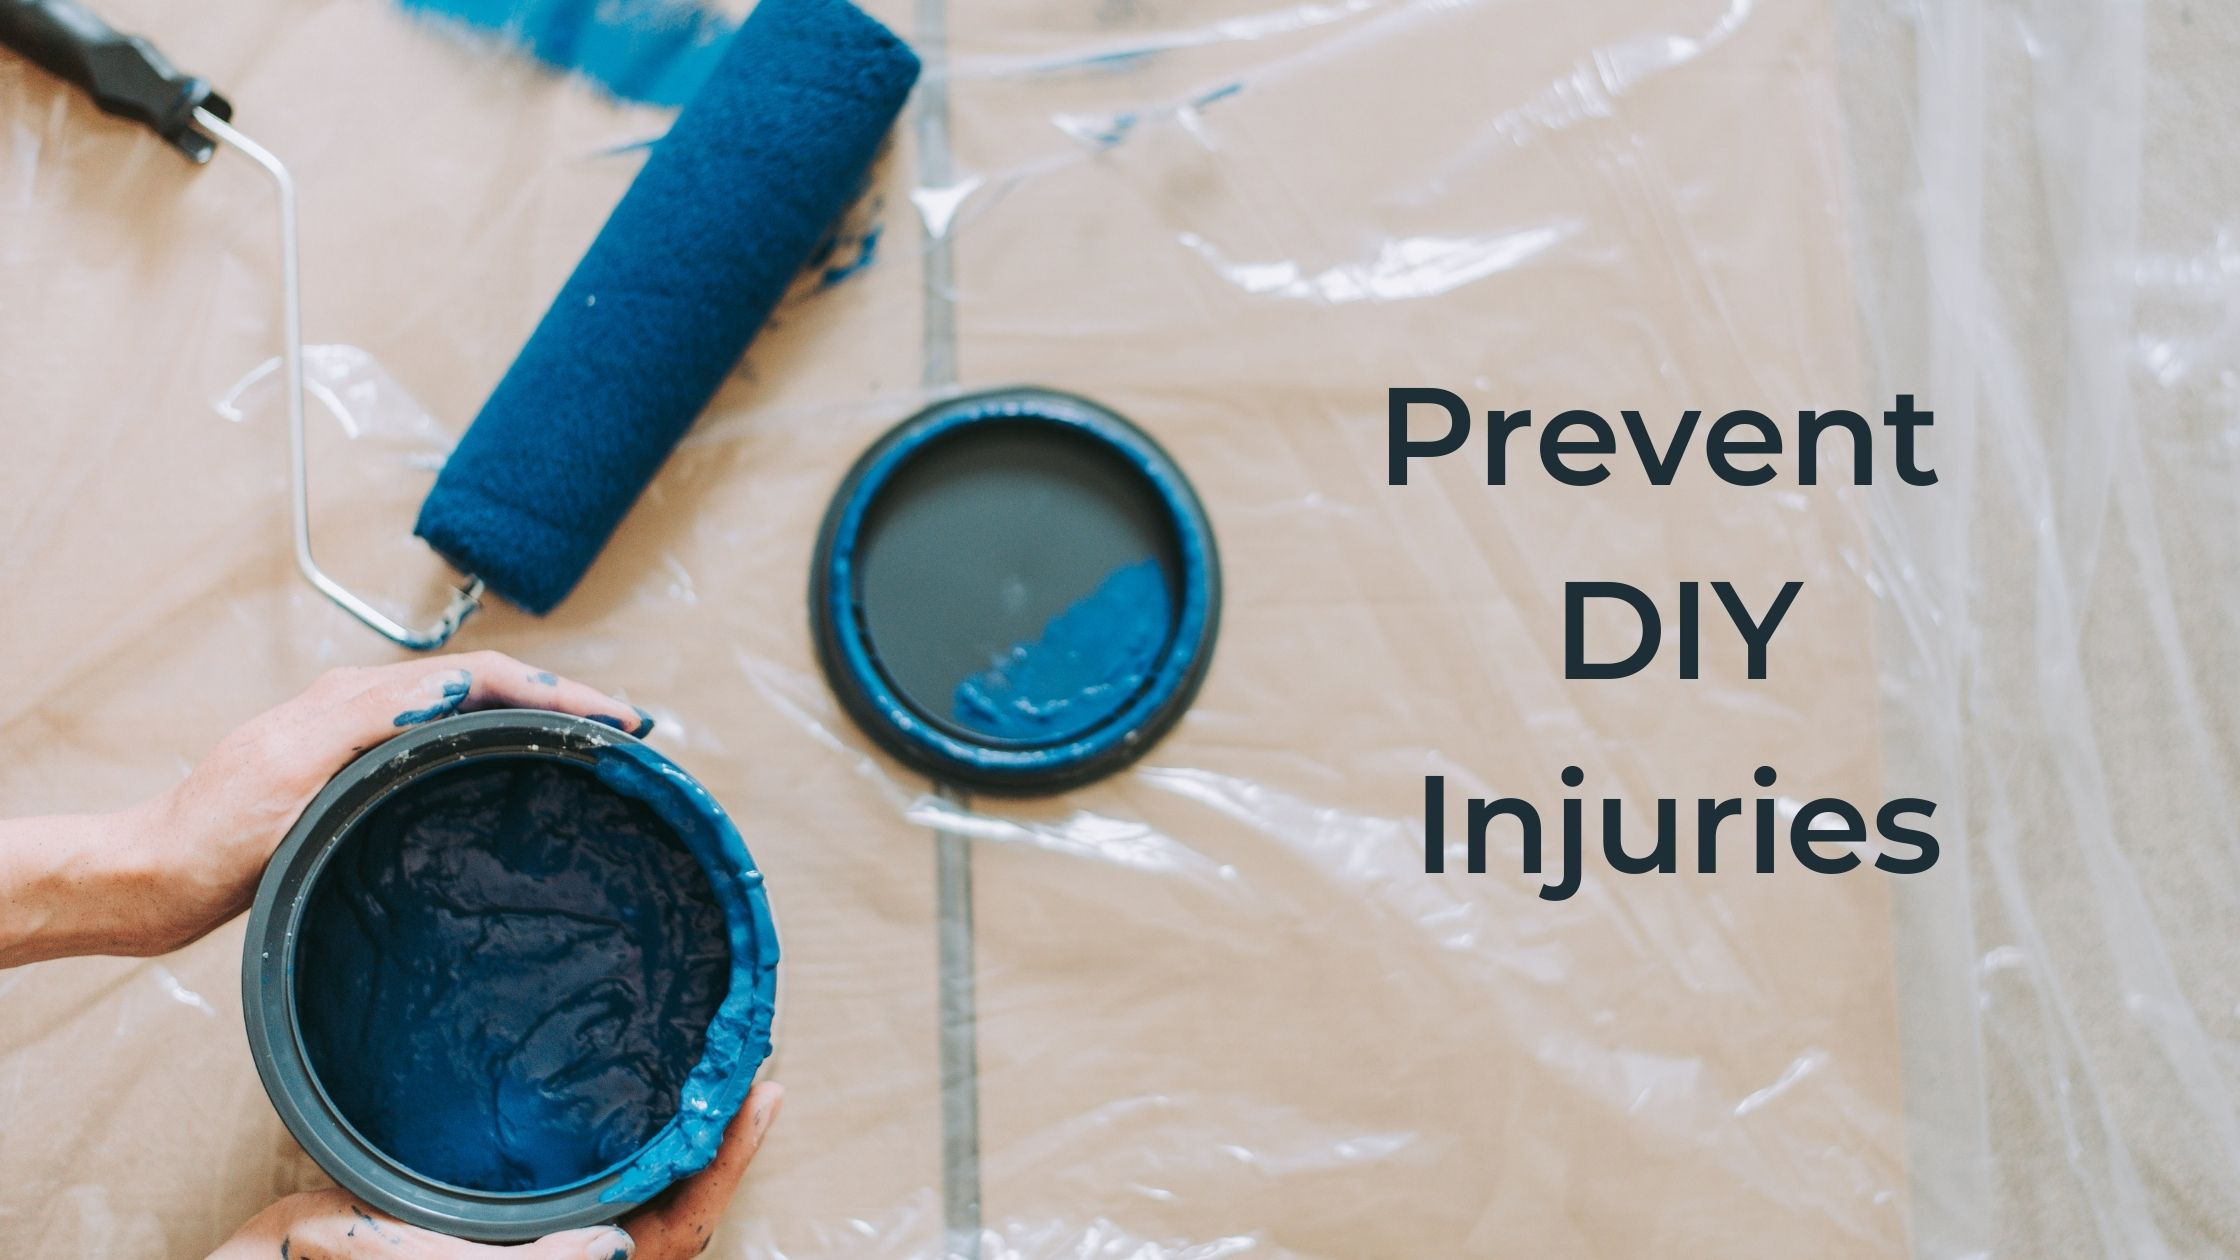 Prevent DIY Injuries during COVID-19 and the Holidays